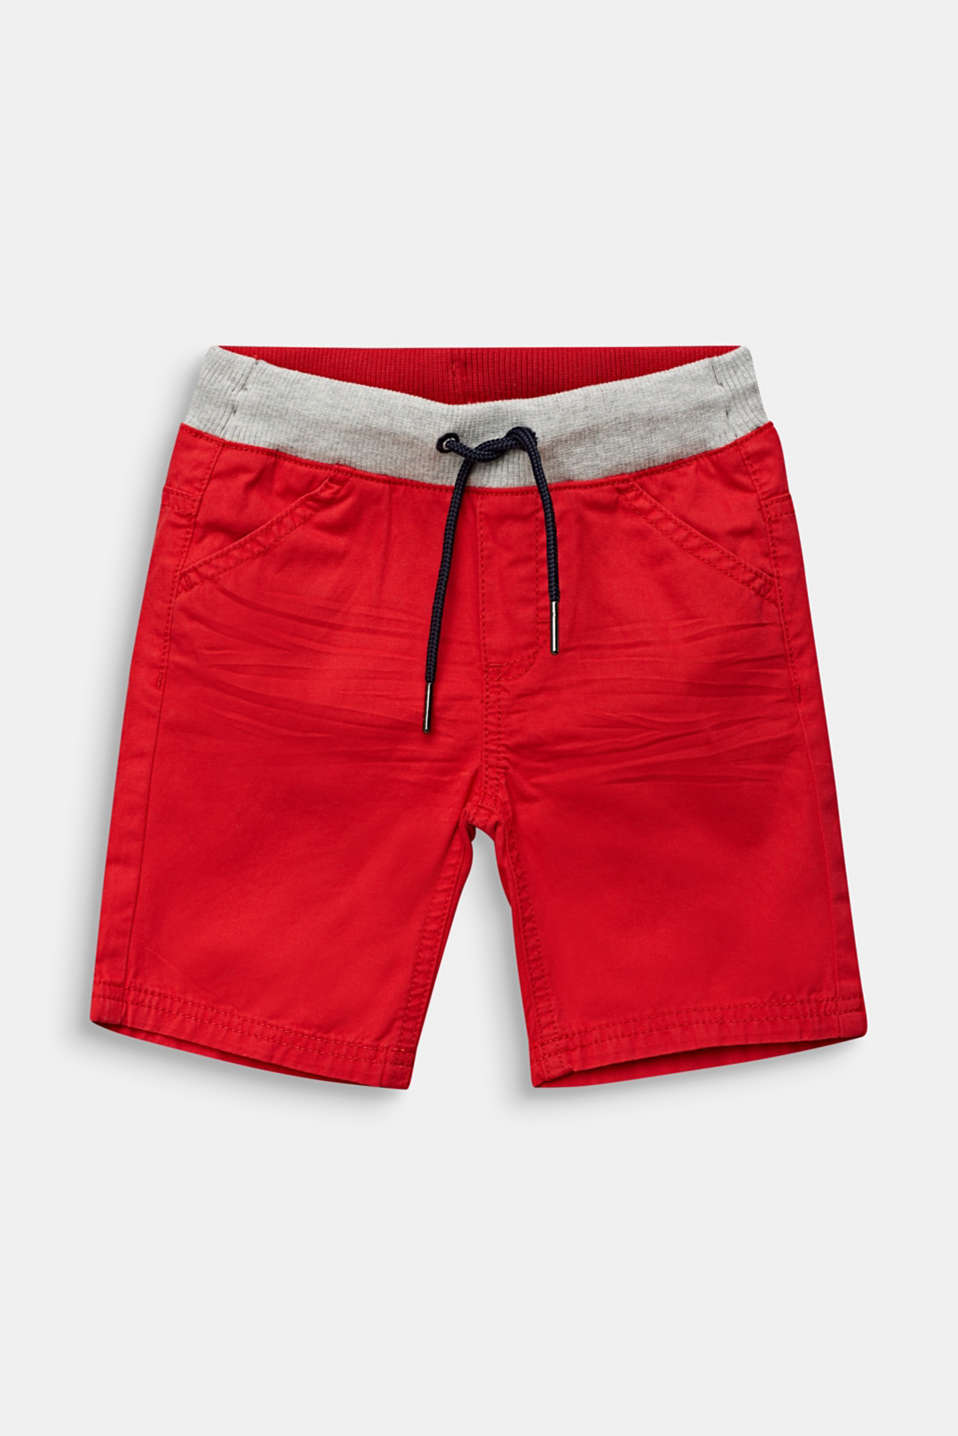 Shorts with a ribbed waistband, 100% cotton, RED, detail image number 0